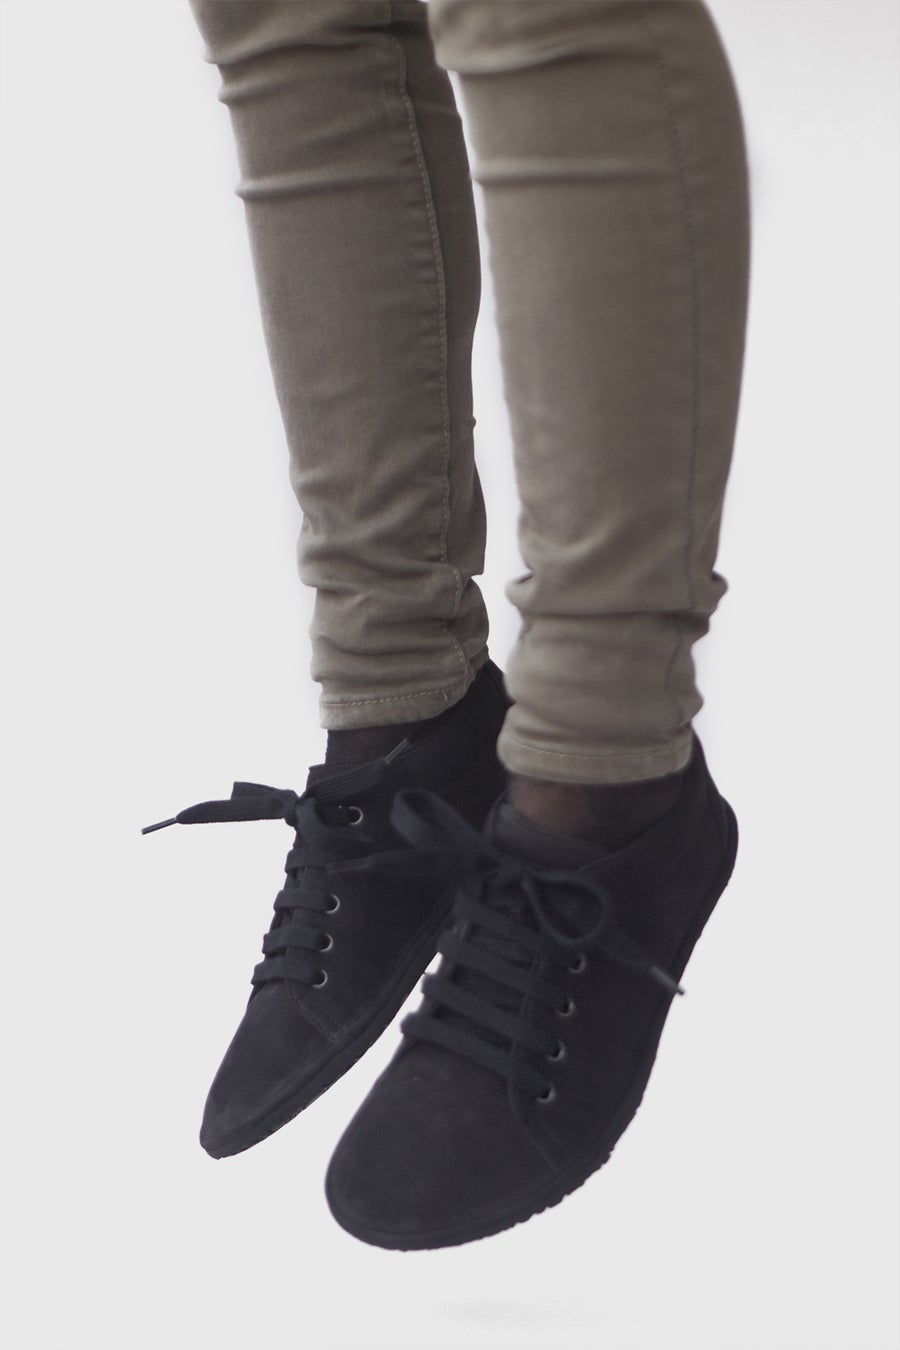 Image of Barefoot sneakers in Black Nubuck